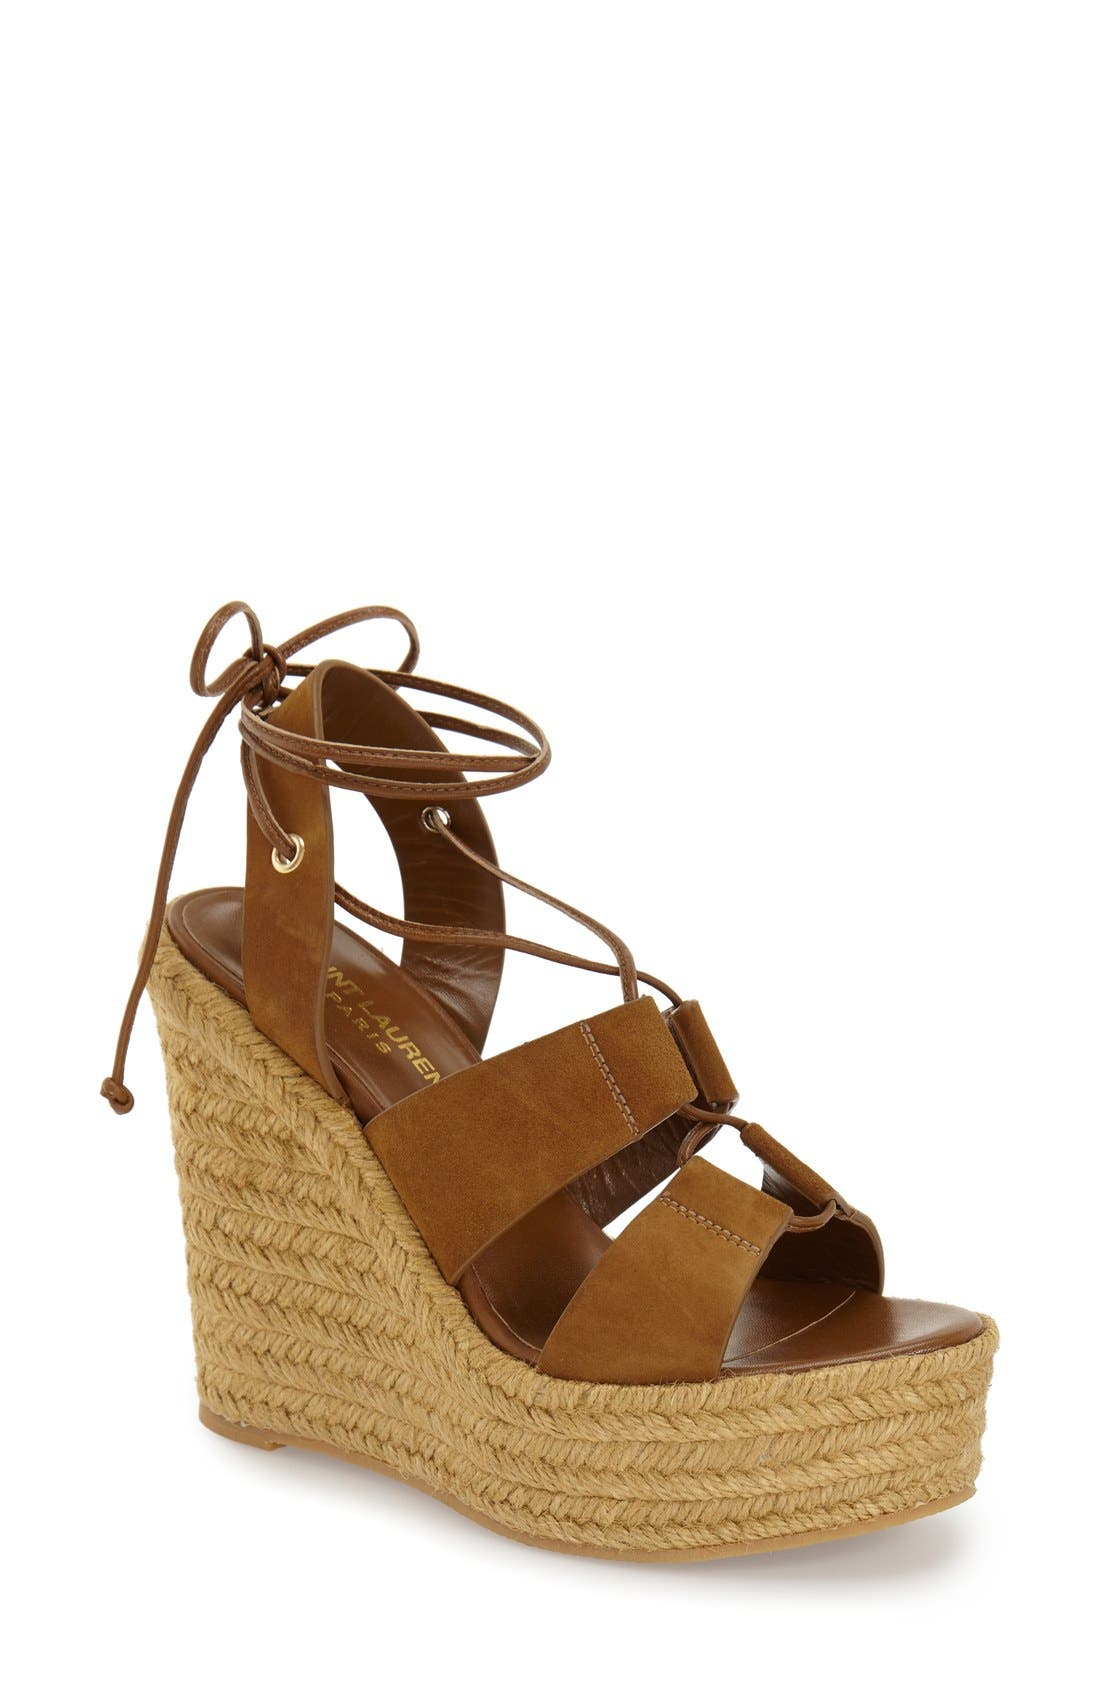 Woven Espadrille Wedge Sandal,                         Main,                         color, Tan Suede